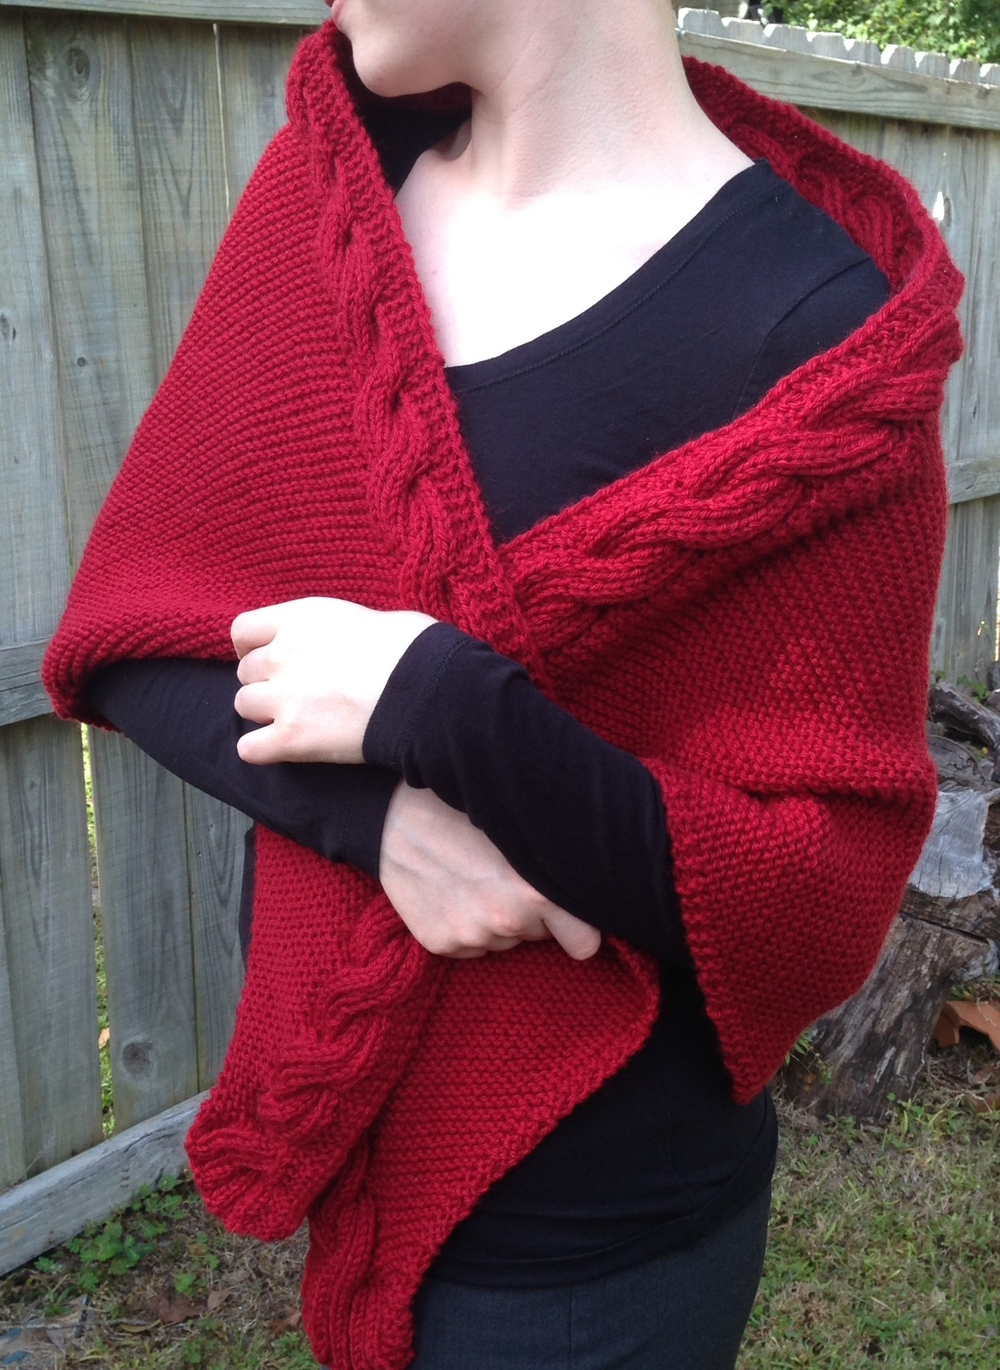 This version was knit in KnitPicks Wool of the Andes Cranberry.